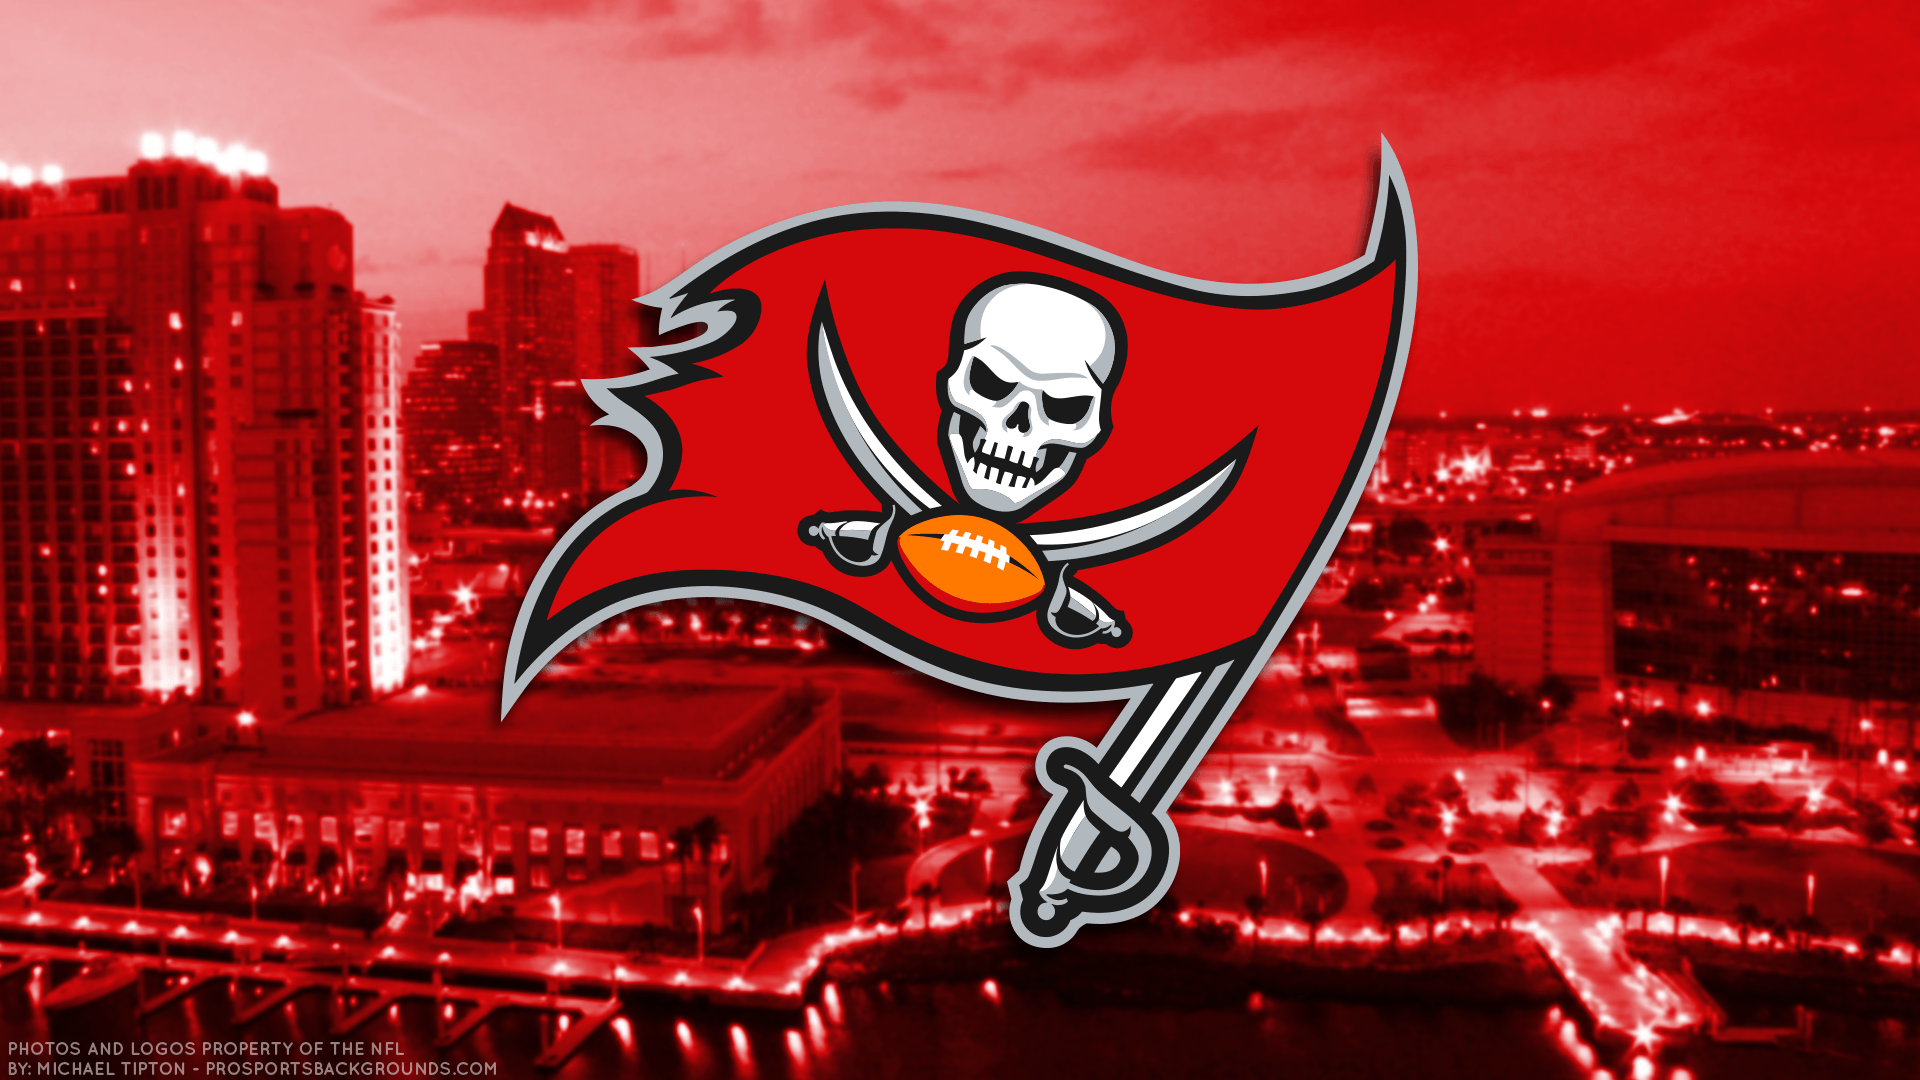 Tampa Bay Buccaneers Wallpapers - PC |iPhone| Android